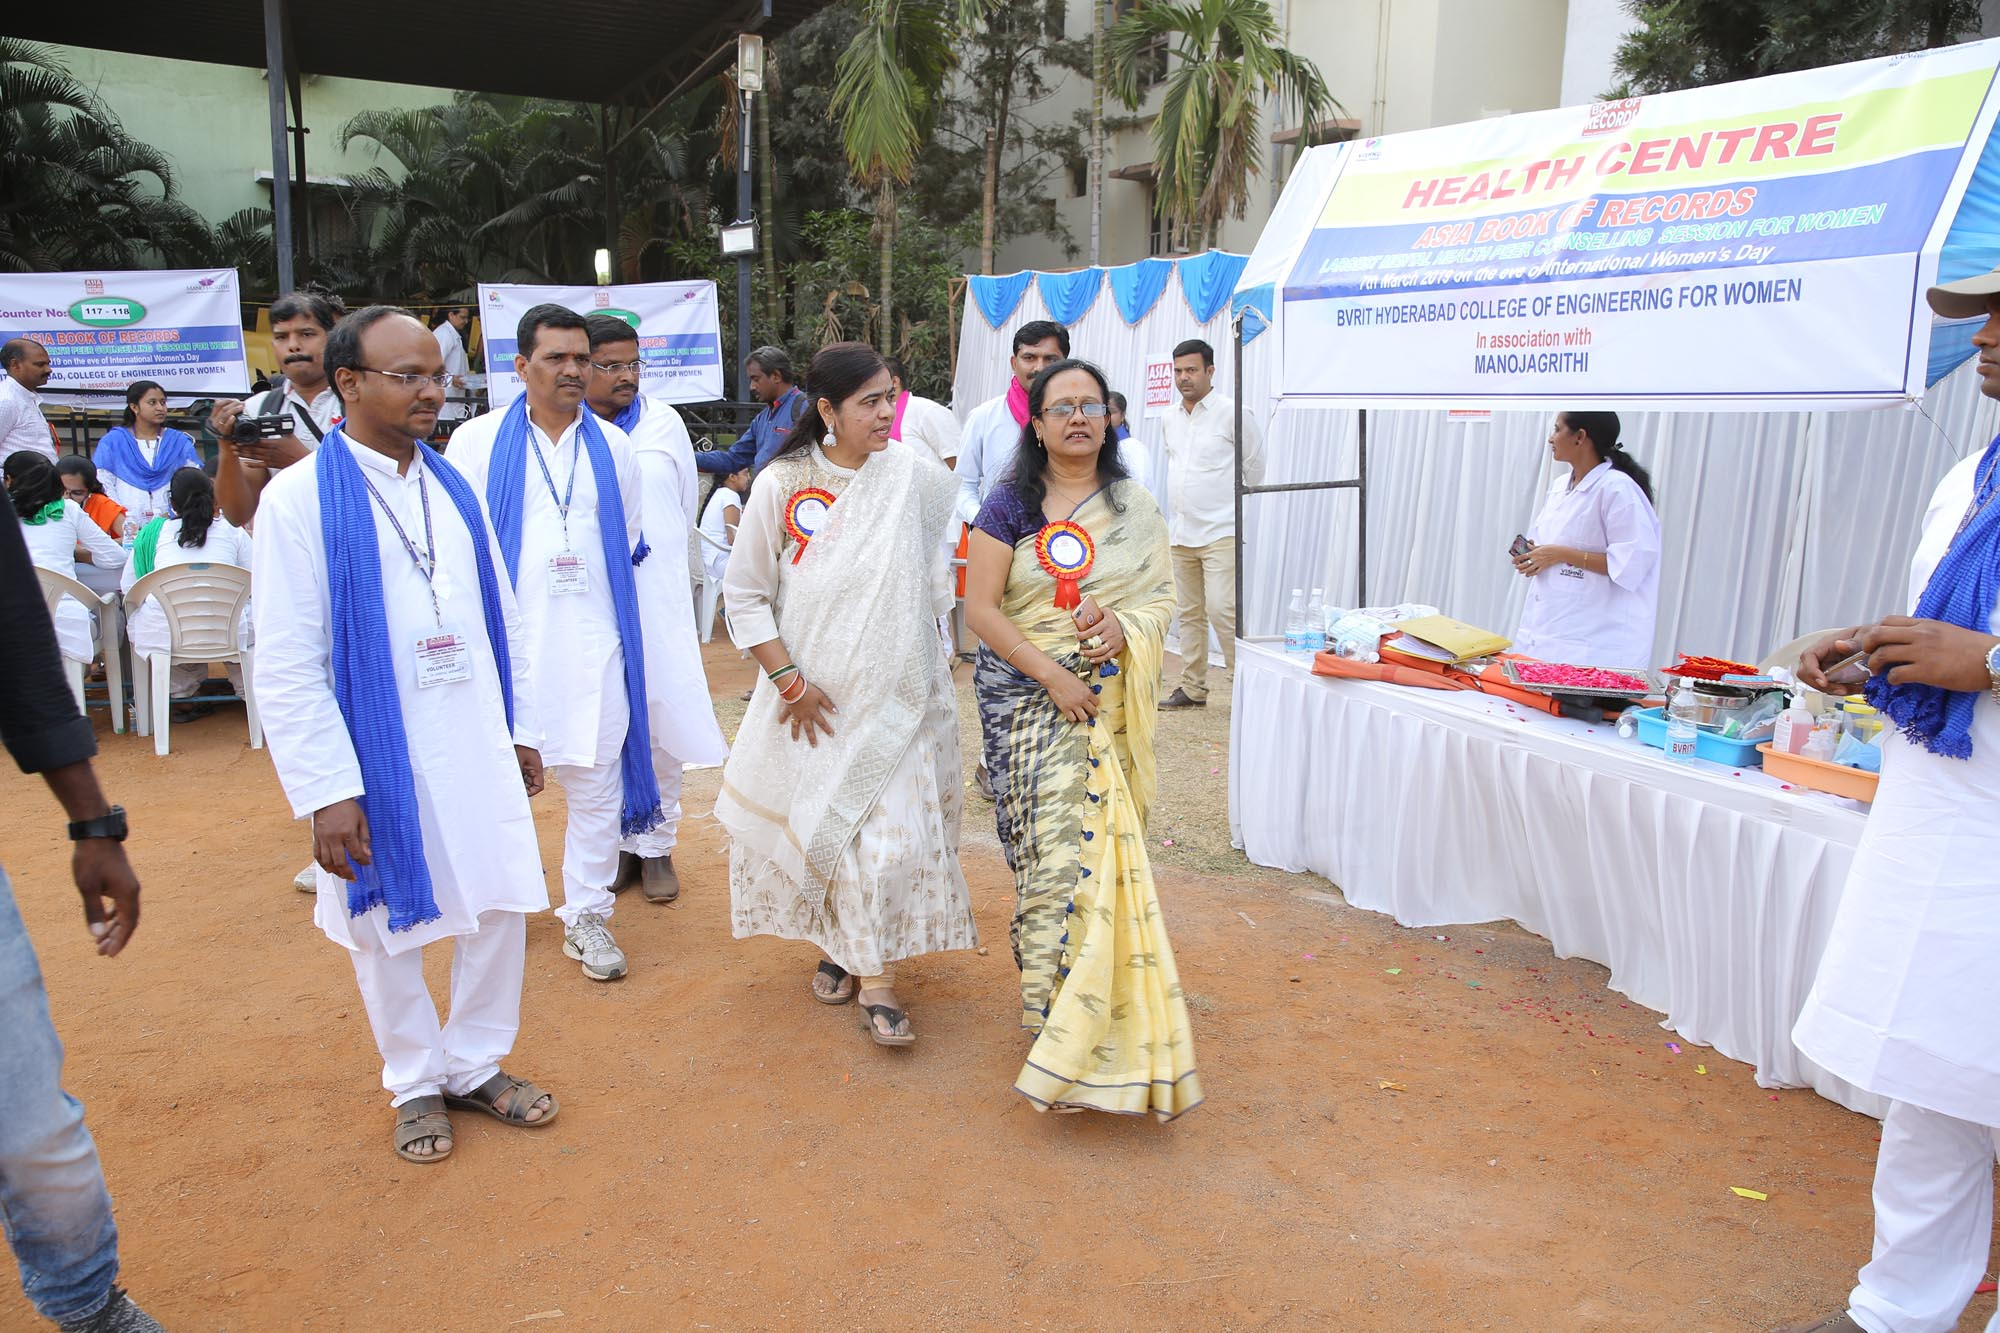 Chief Guest - Dr Vasuda Rani, Adjudicator visiting the counters along with Head of the Depts